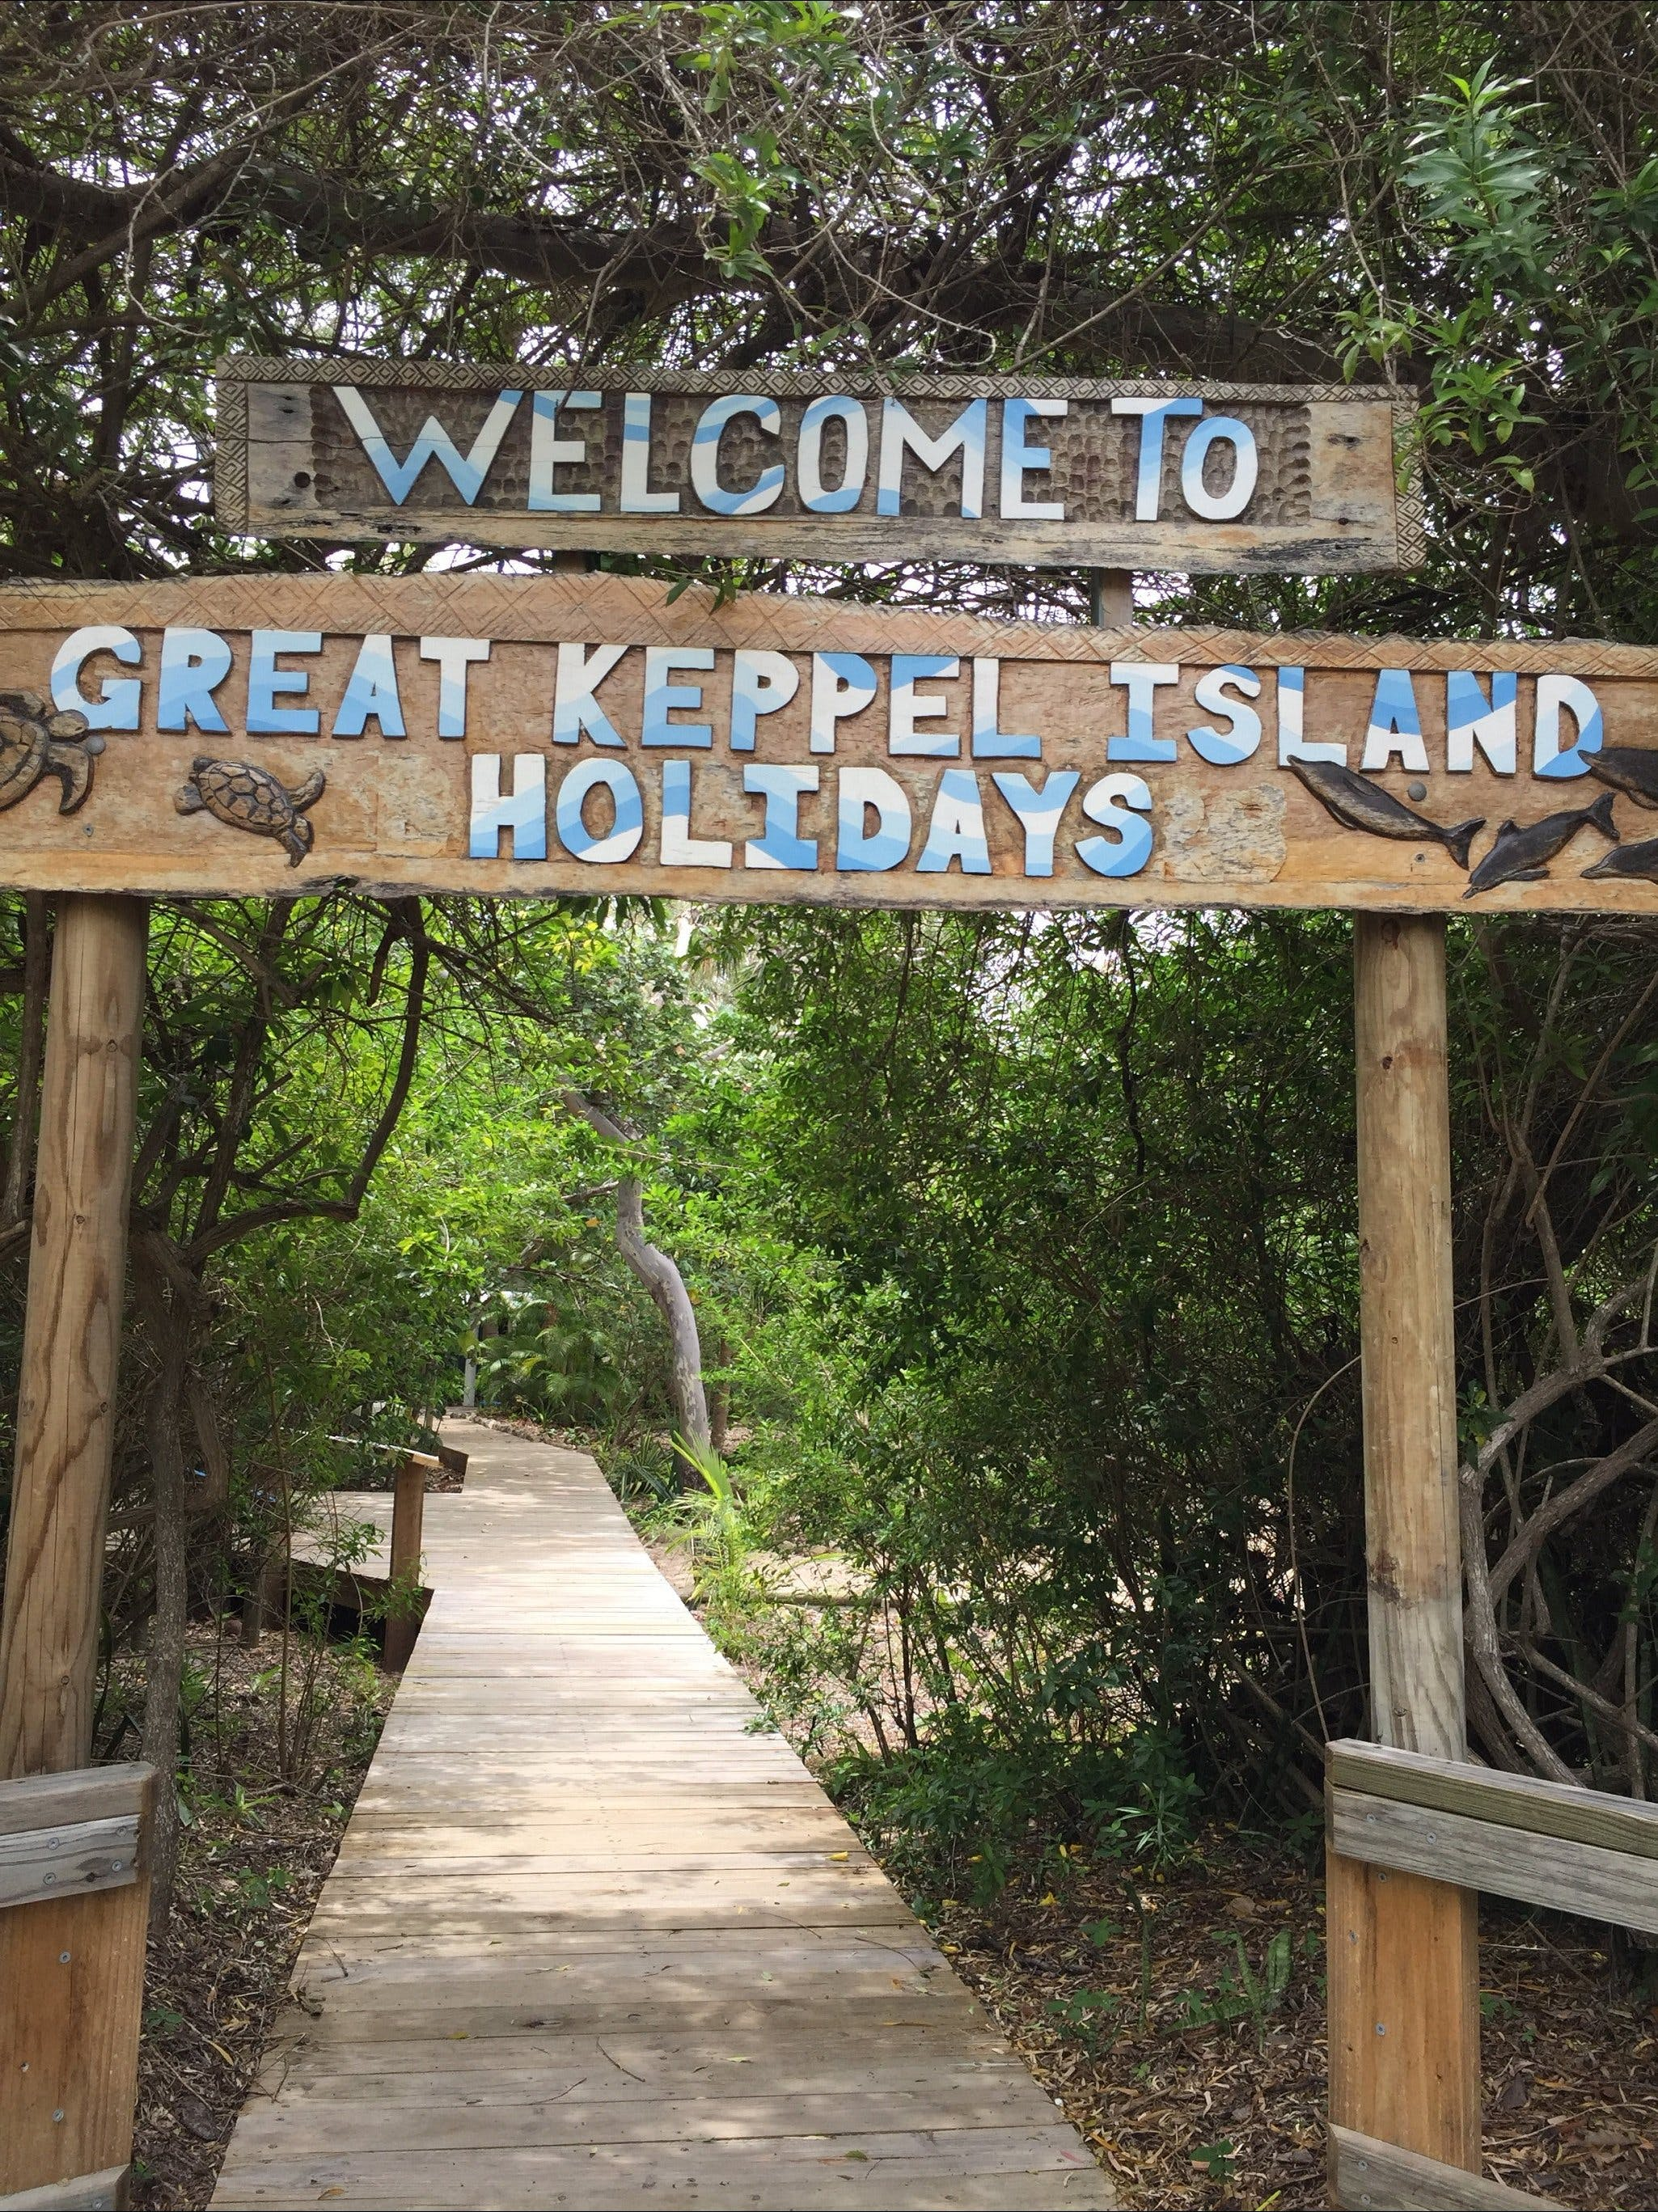 Great Keppel Island Holiday Village - Accommodation Daintree